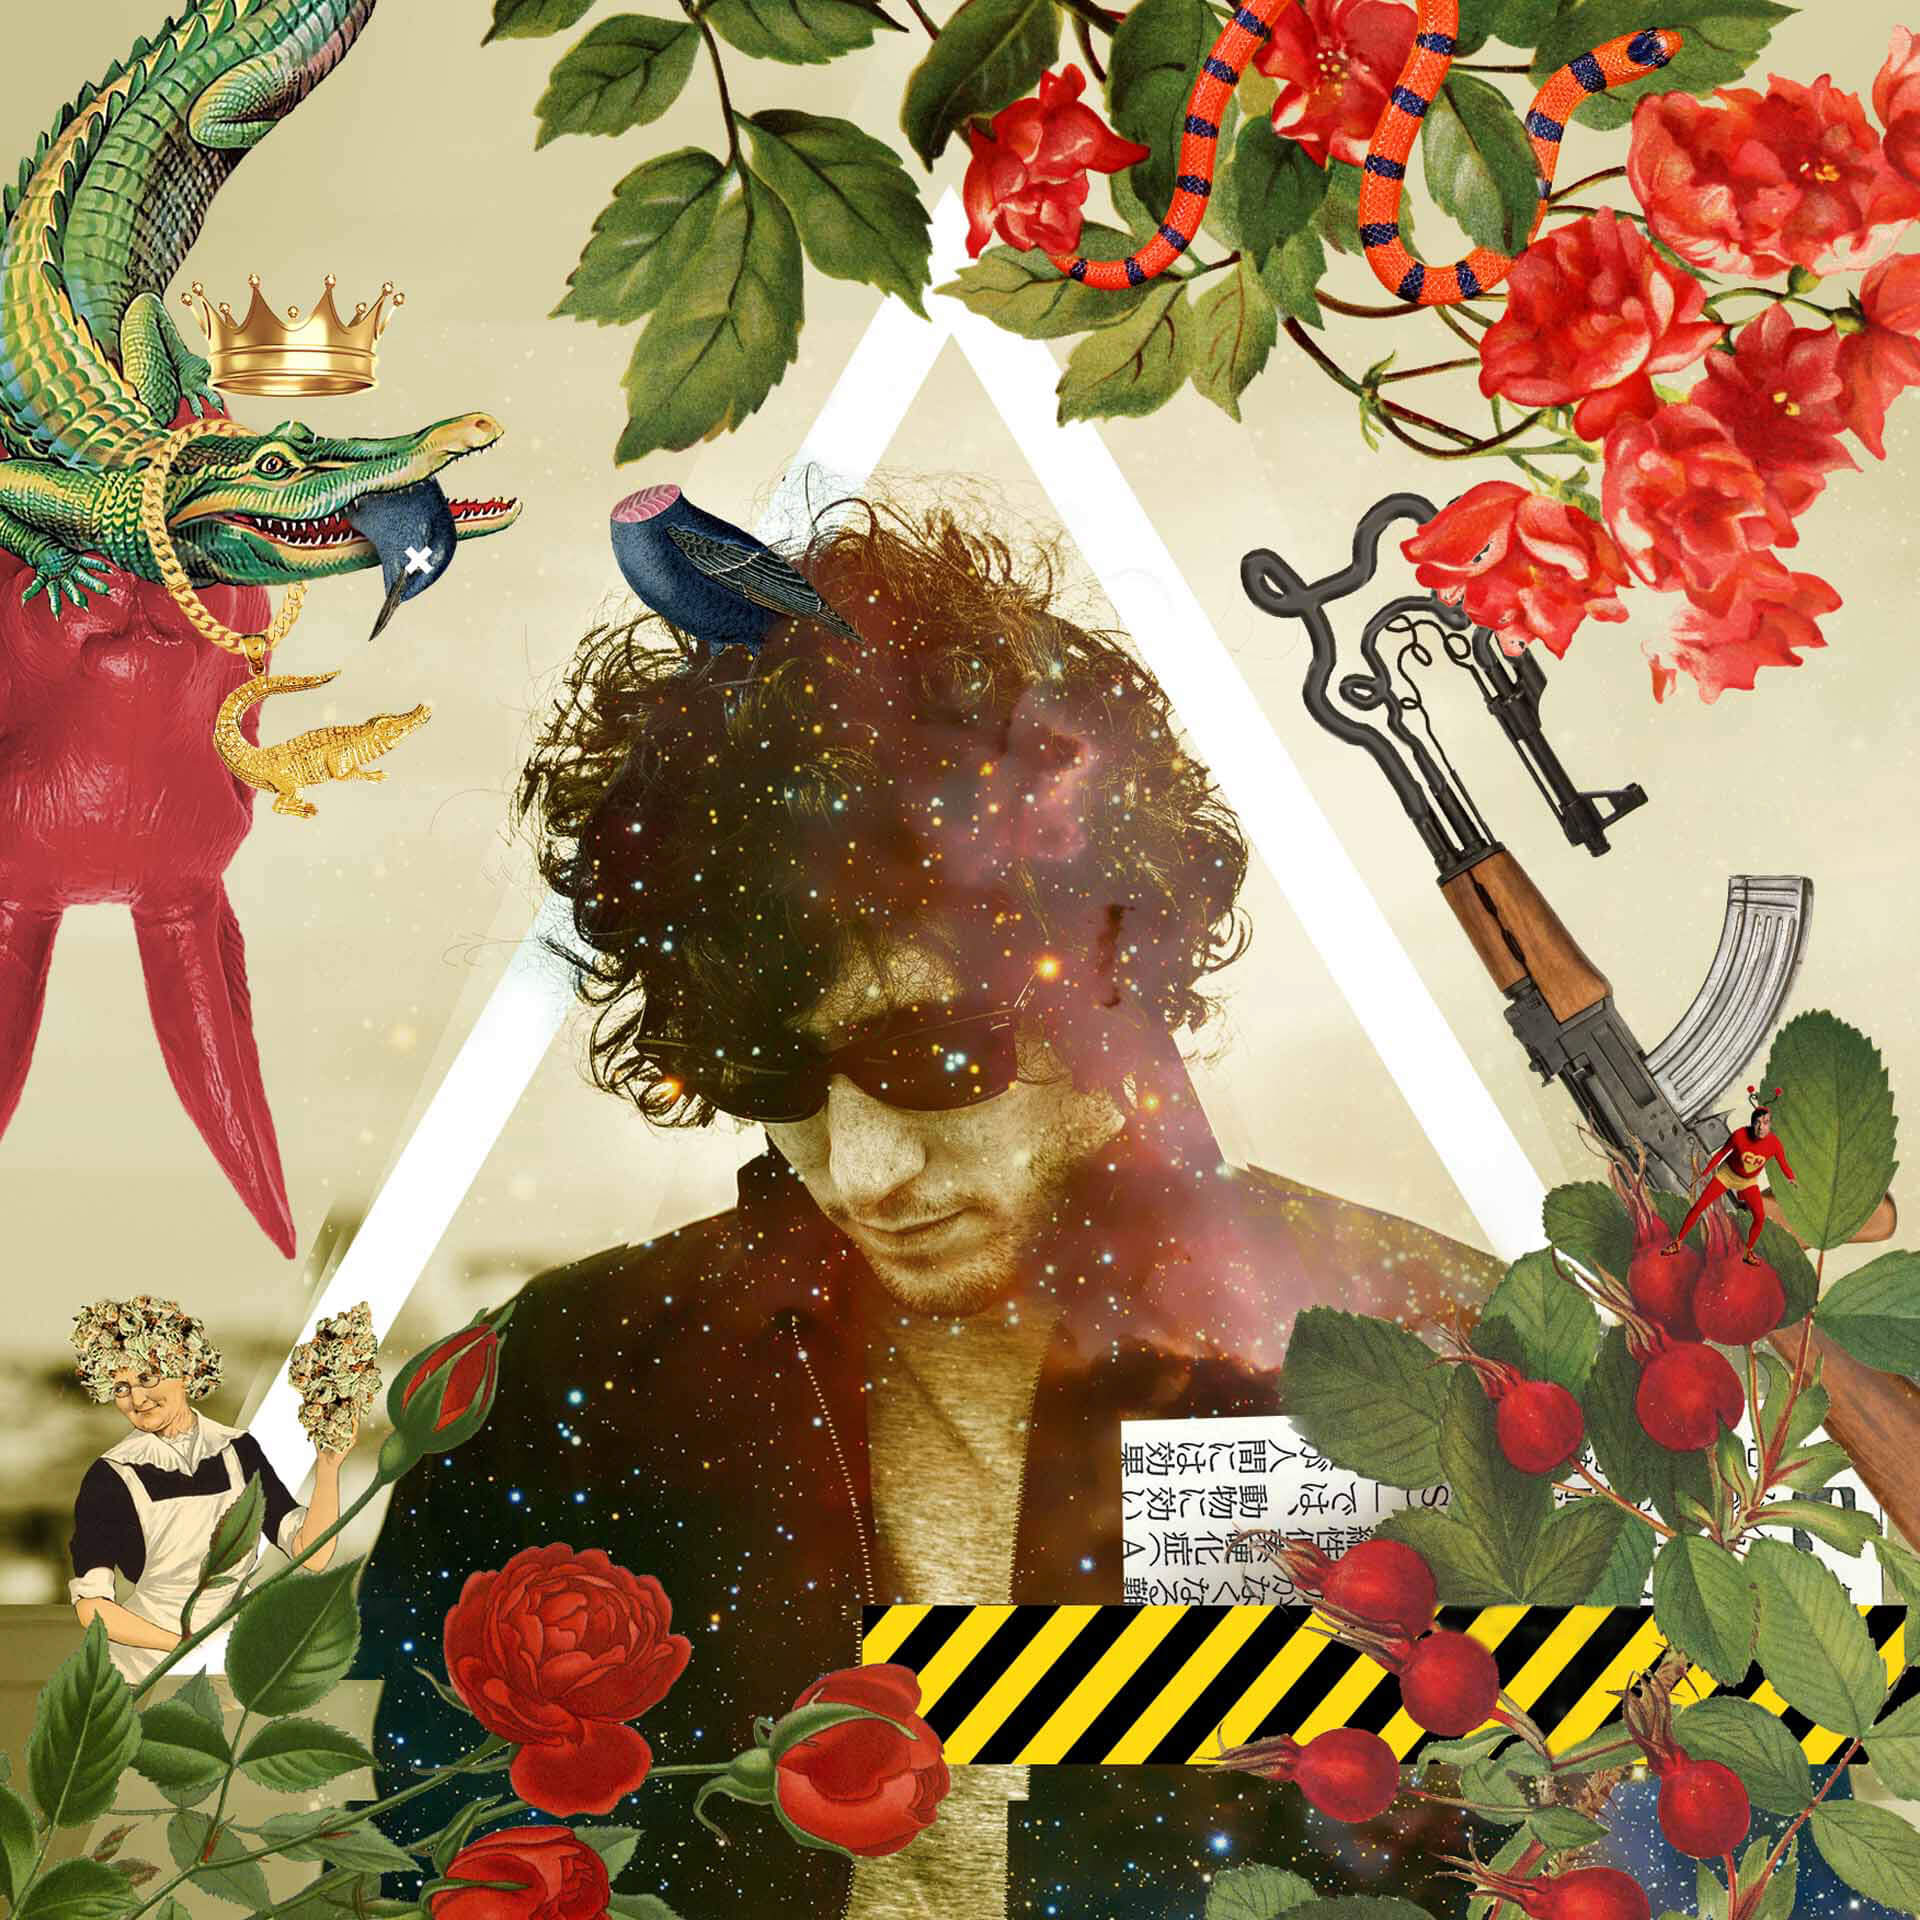 gabriel russo collage digital jardin